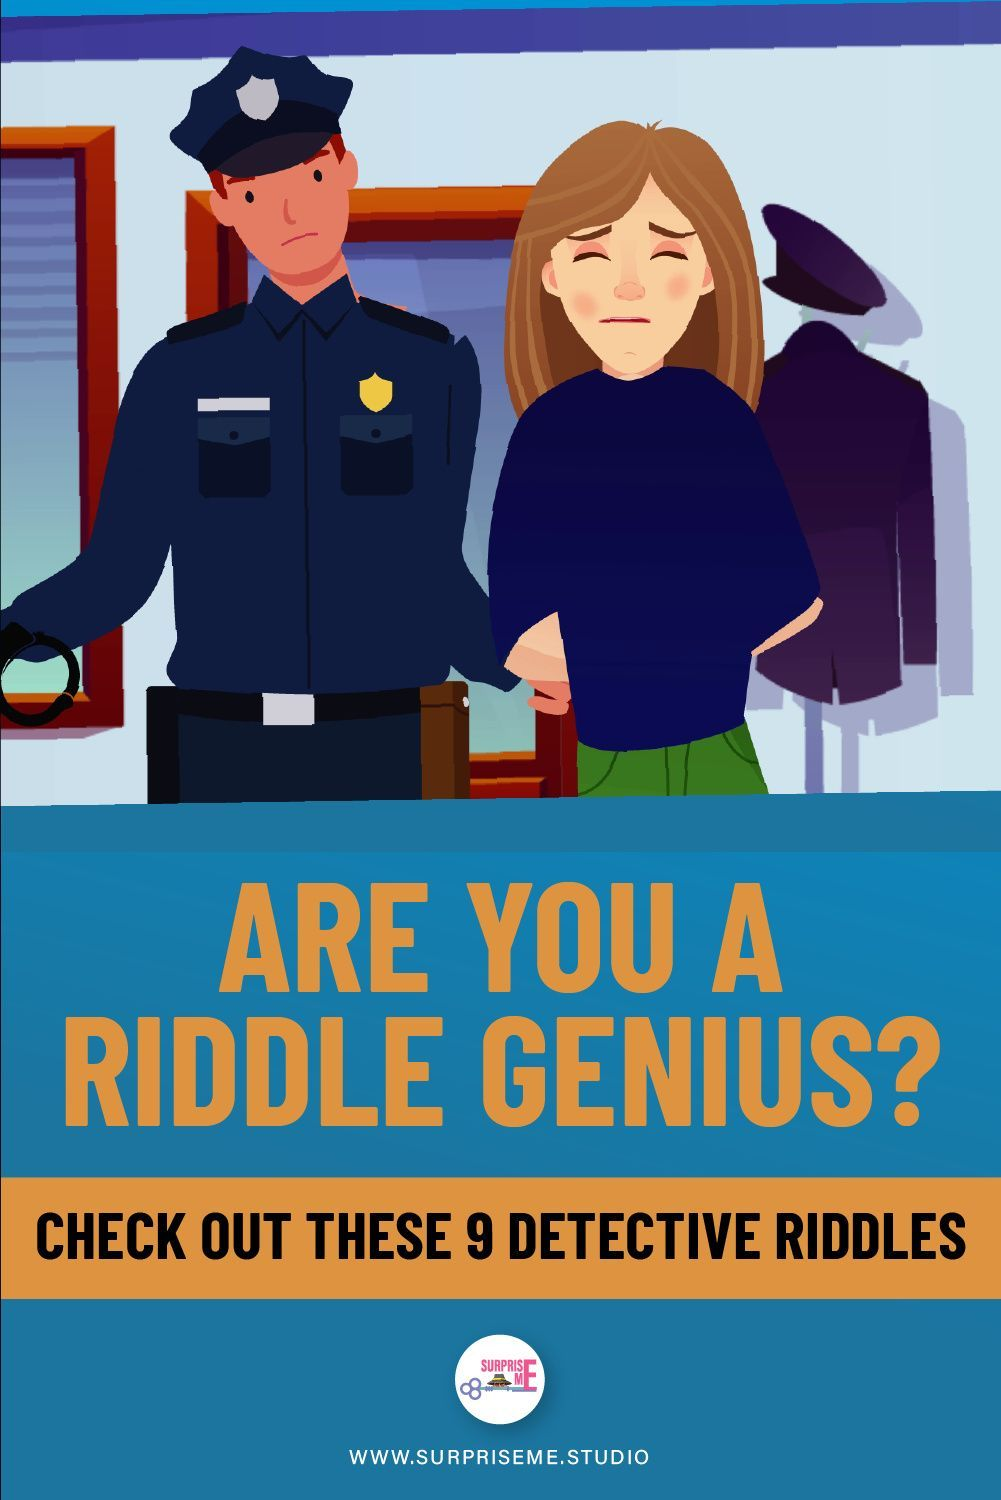 Are YOU a Riddle Genius? Check out these 9 Detective